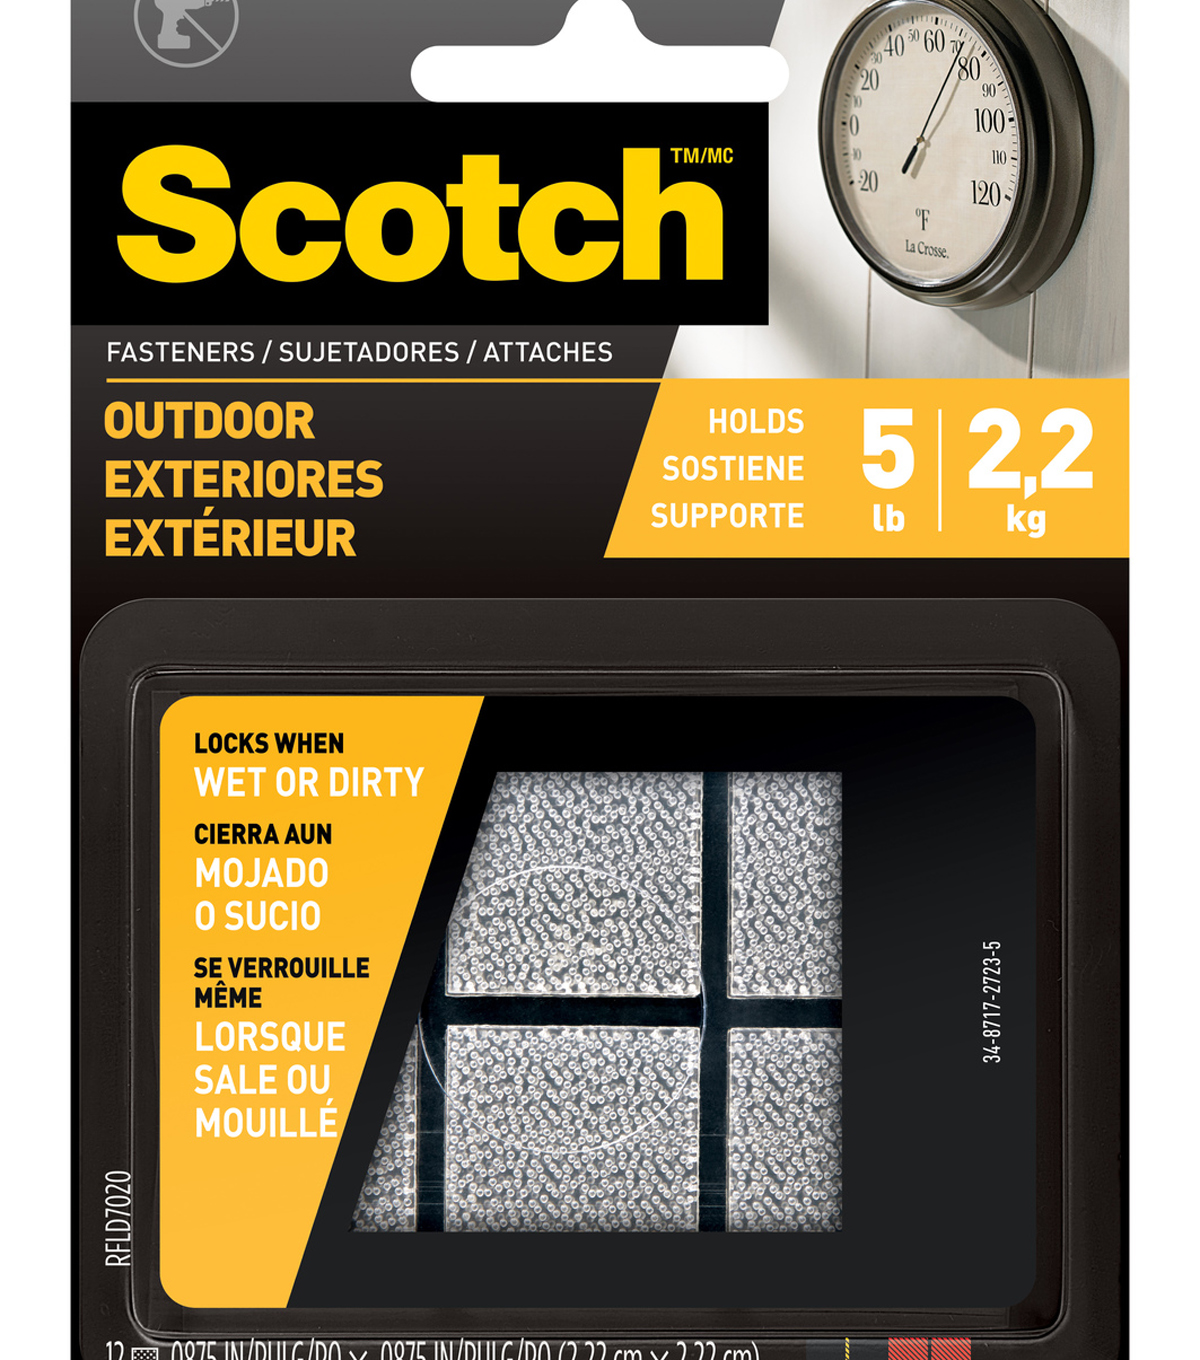 Scotch Fasteners White Outdoor